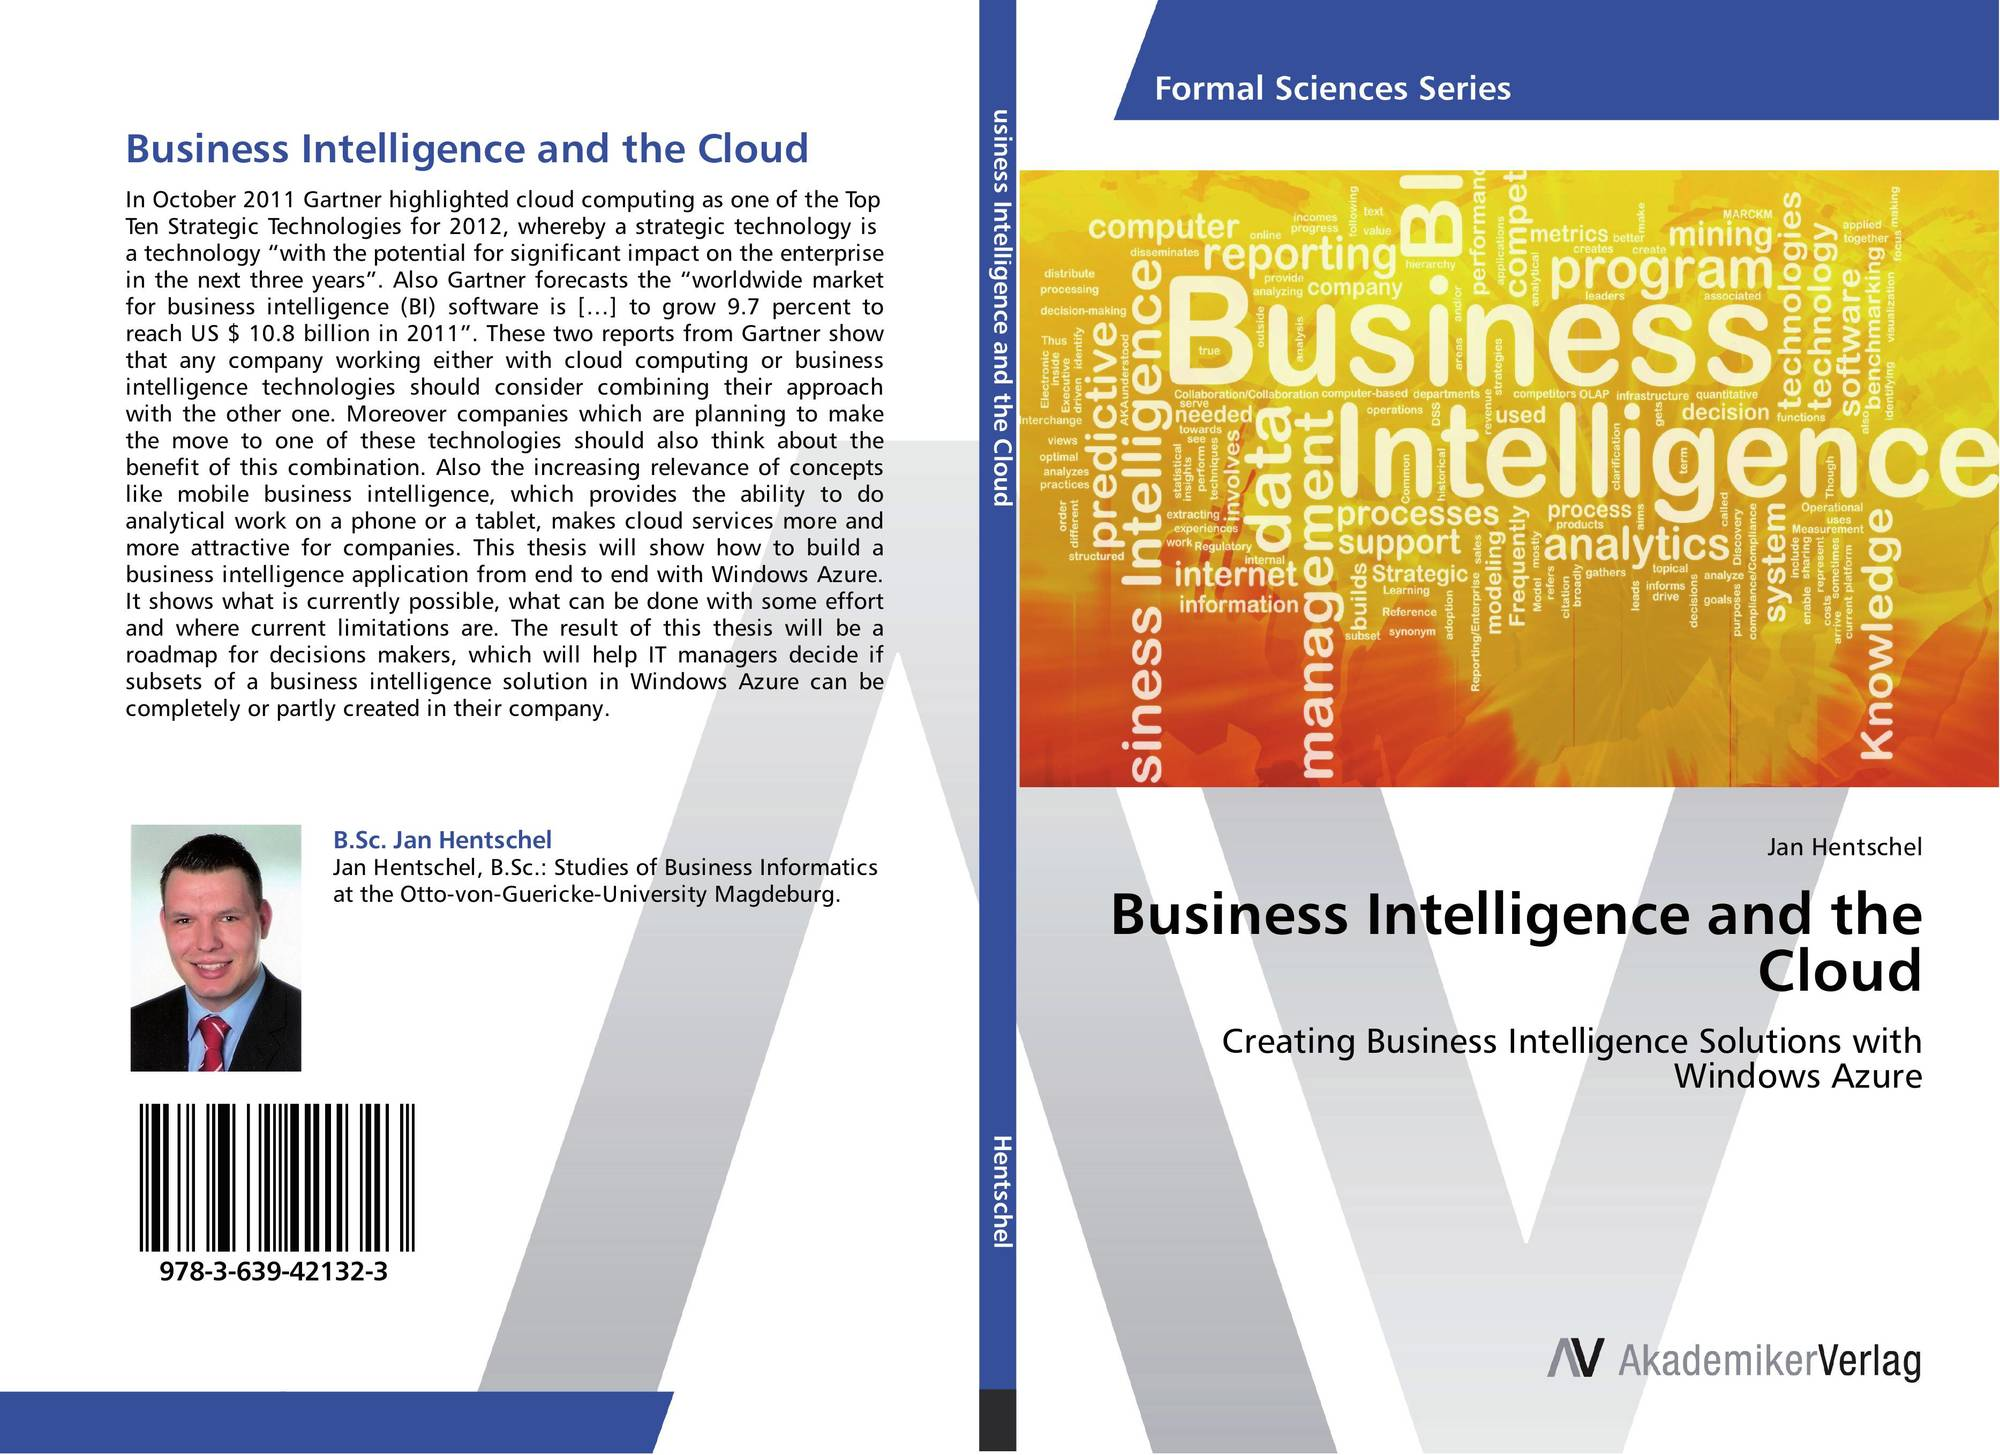 Business Intelligence And The Cloud, 9783639421323. Multi Wan Load Balancing Help Desk Technology. Plastic Surgery Pasadena Ca Expand Your Mind. Security Cameras For Inside The Home. Itil Certification Classes Security Glass 3m. Acne Laser Treatment Cost Ad Agency Charlotte. Rn To Msn Program Online Associate Of Science. Local Advertising Sites Gastric Bypass Surger. Halston Heritage Cape Dress Credit Score Fix